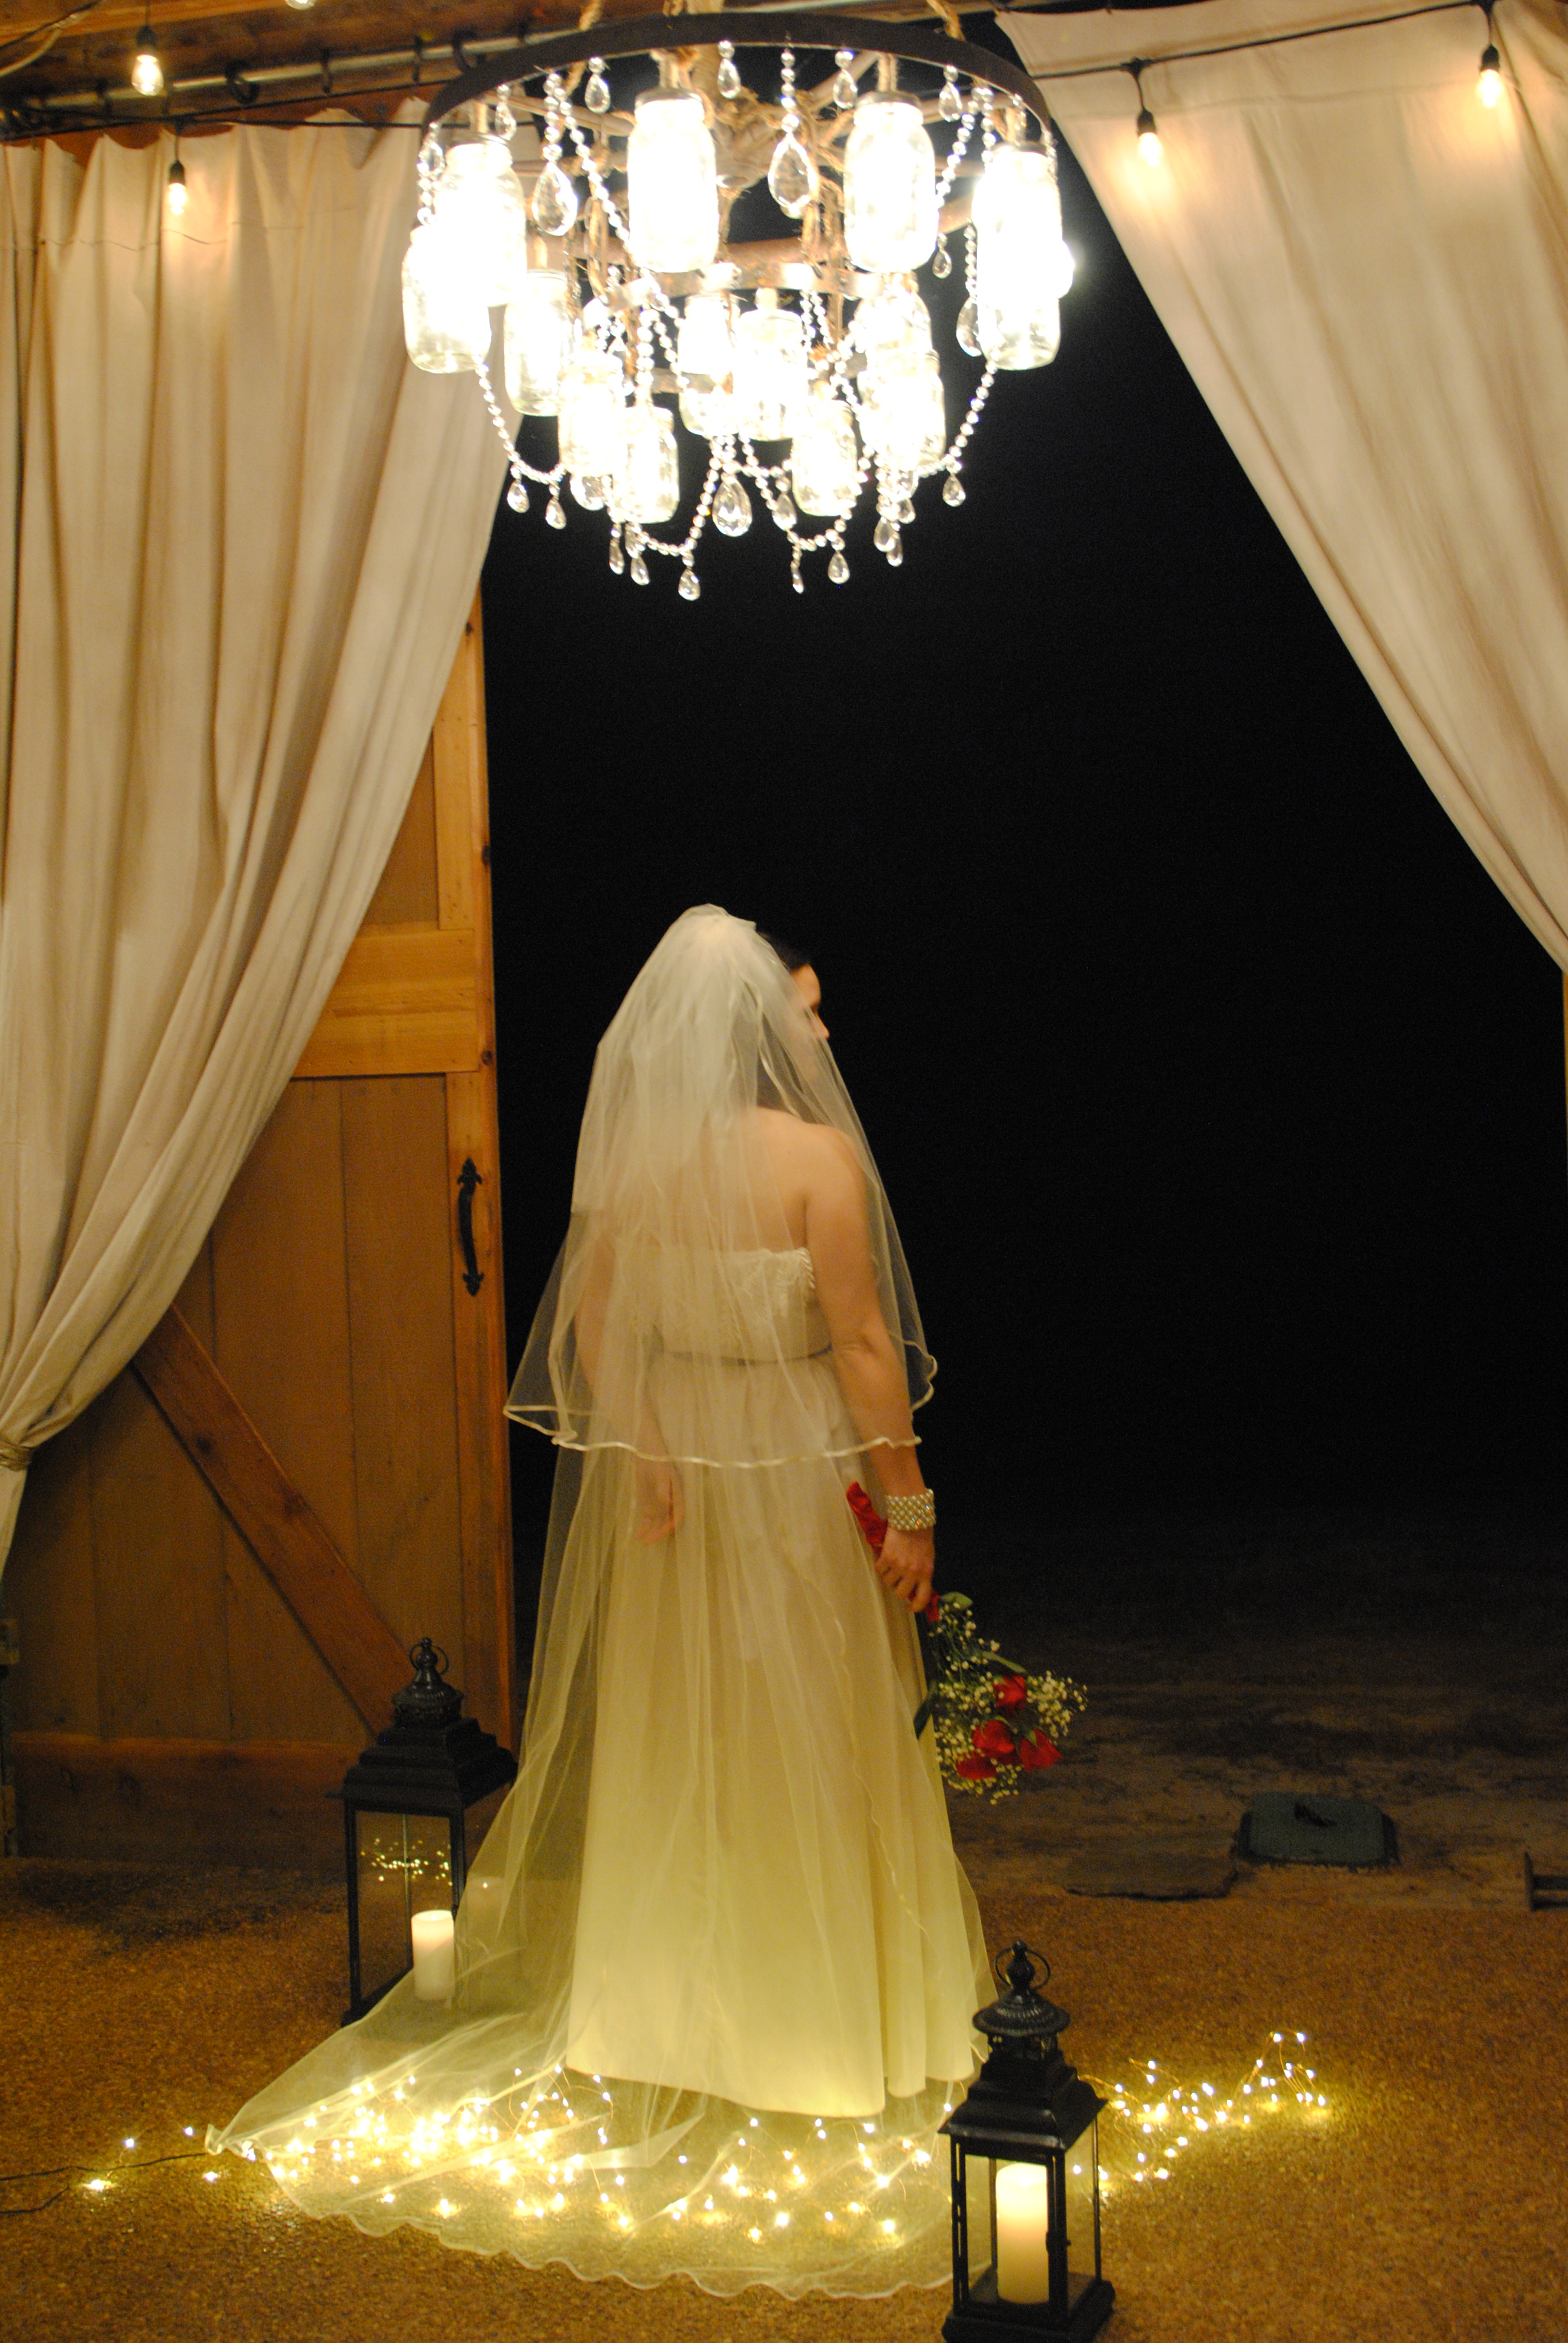 Bride with curtains